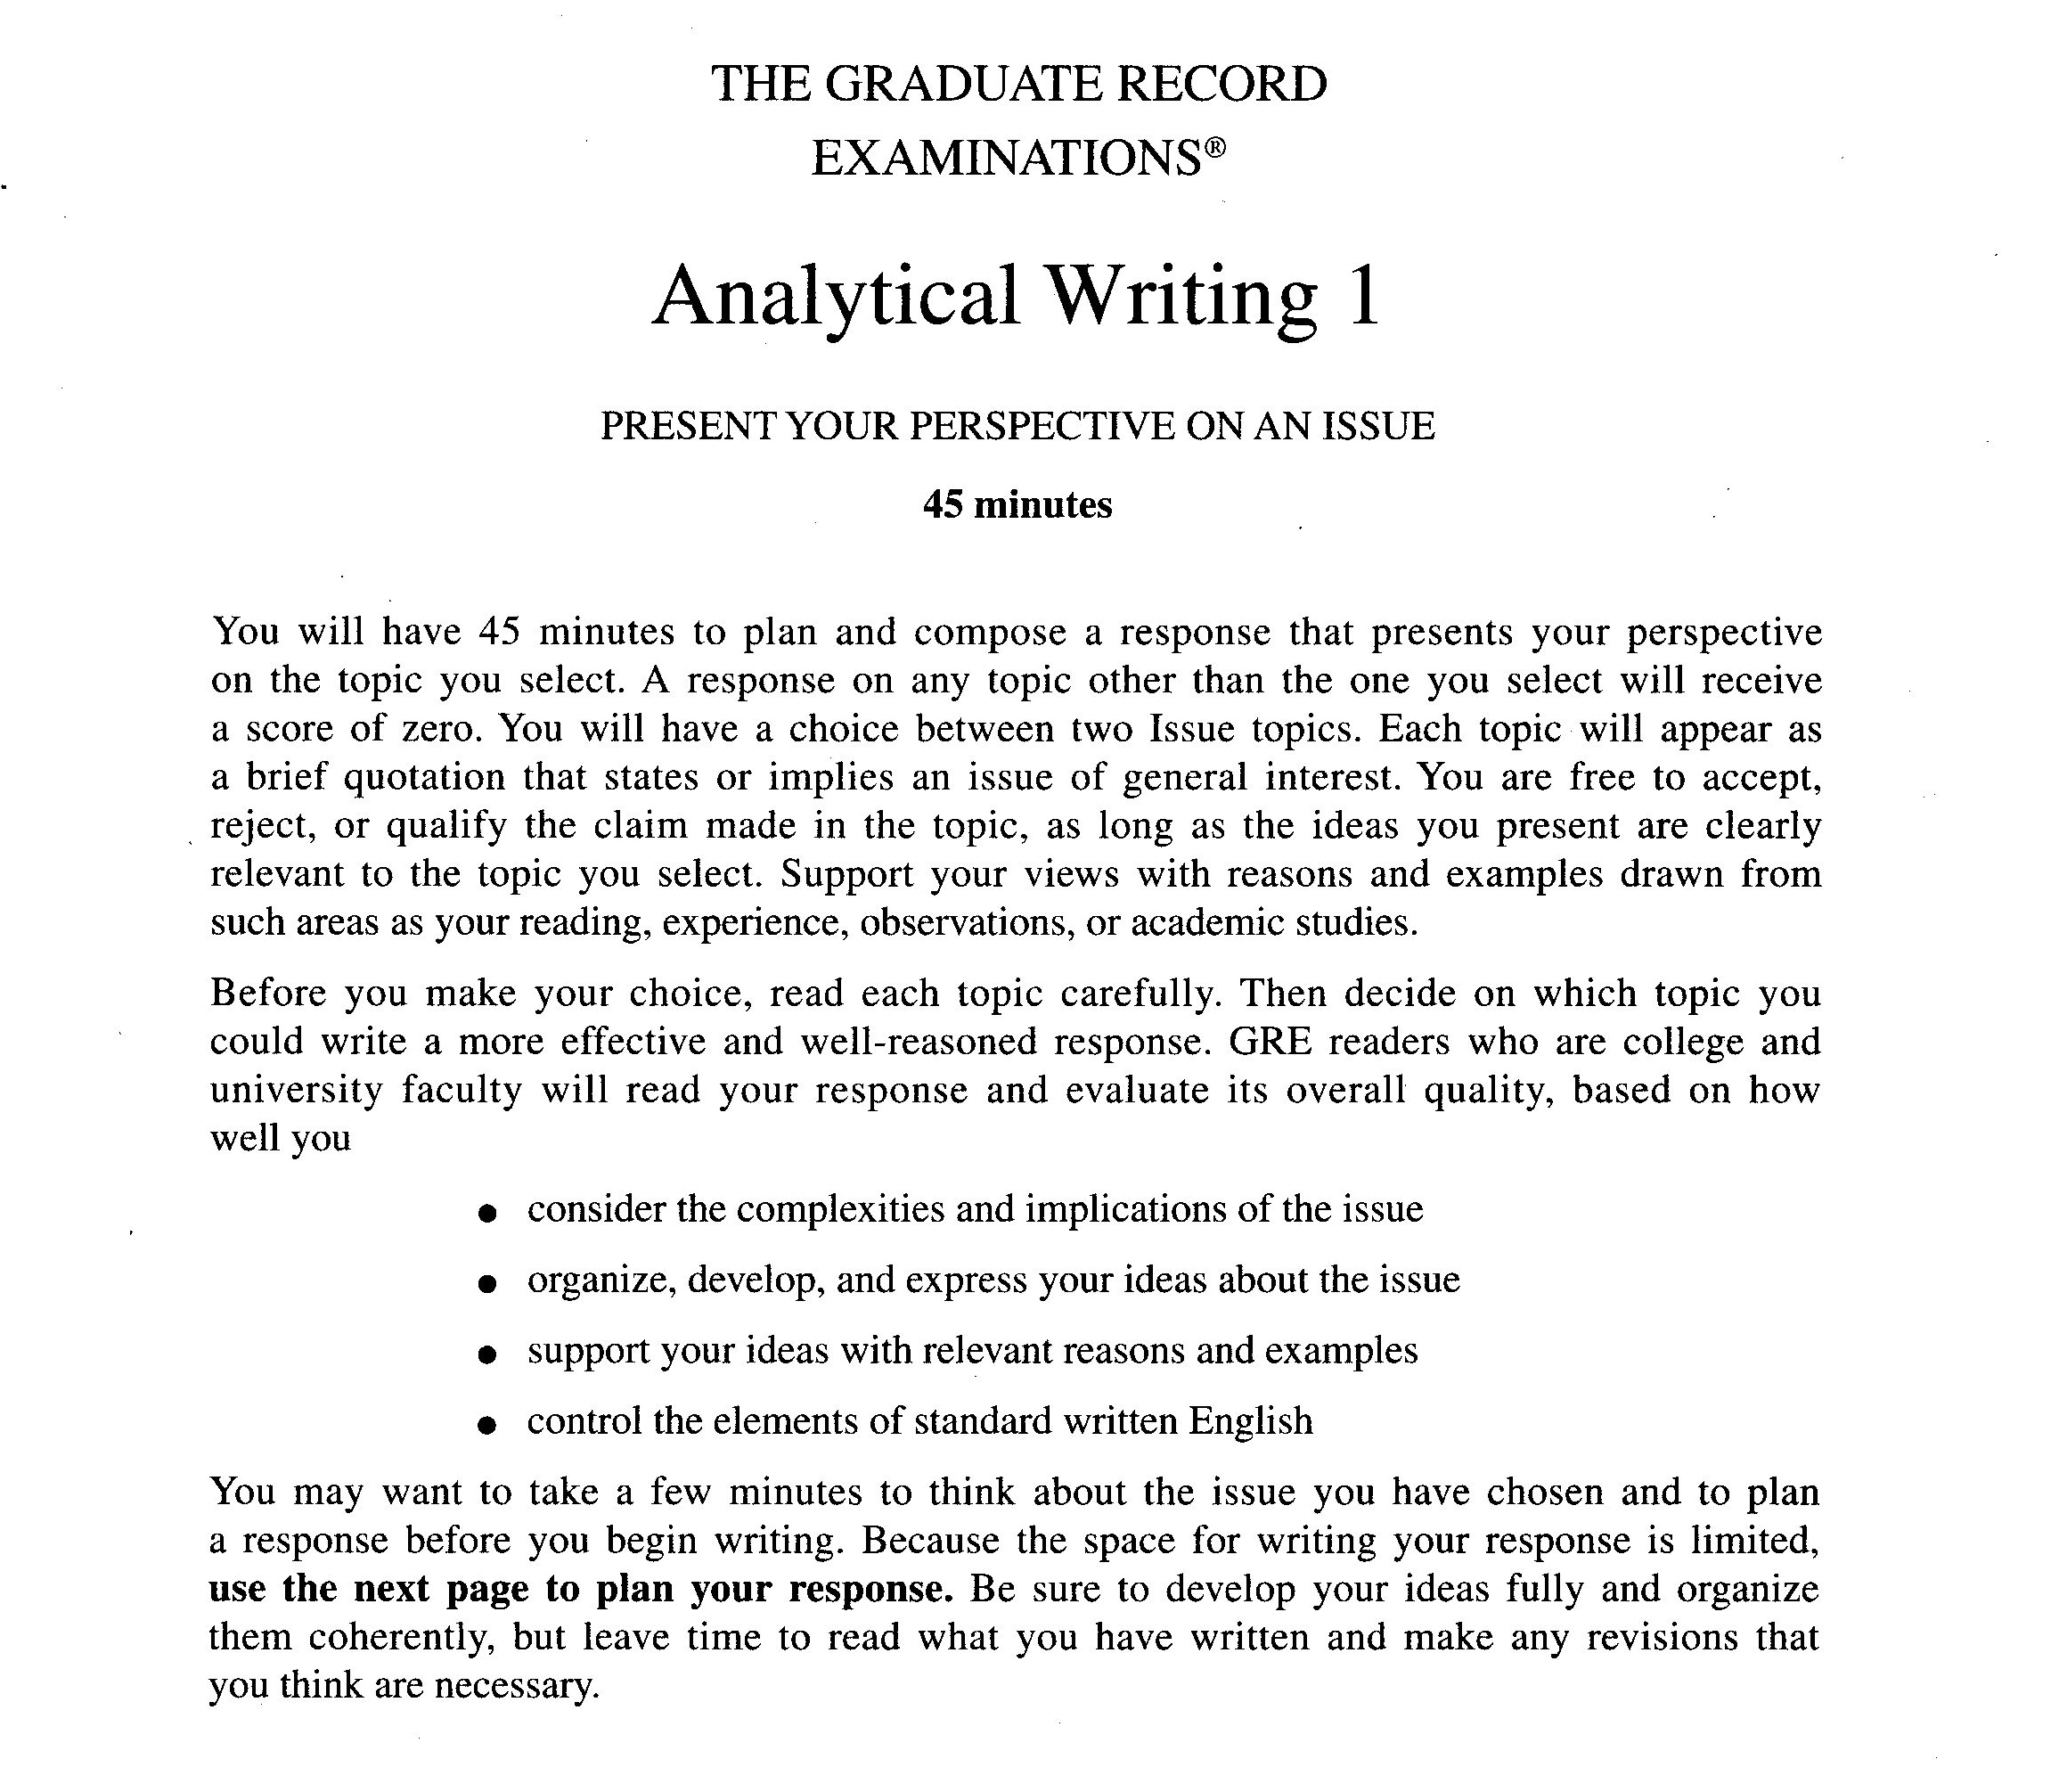 005 Gre Essay Prompts Example Analytical Writing Issue Task Directions Fantastic Topics Pool Pdf With Answers Full